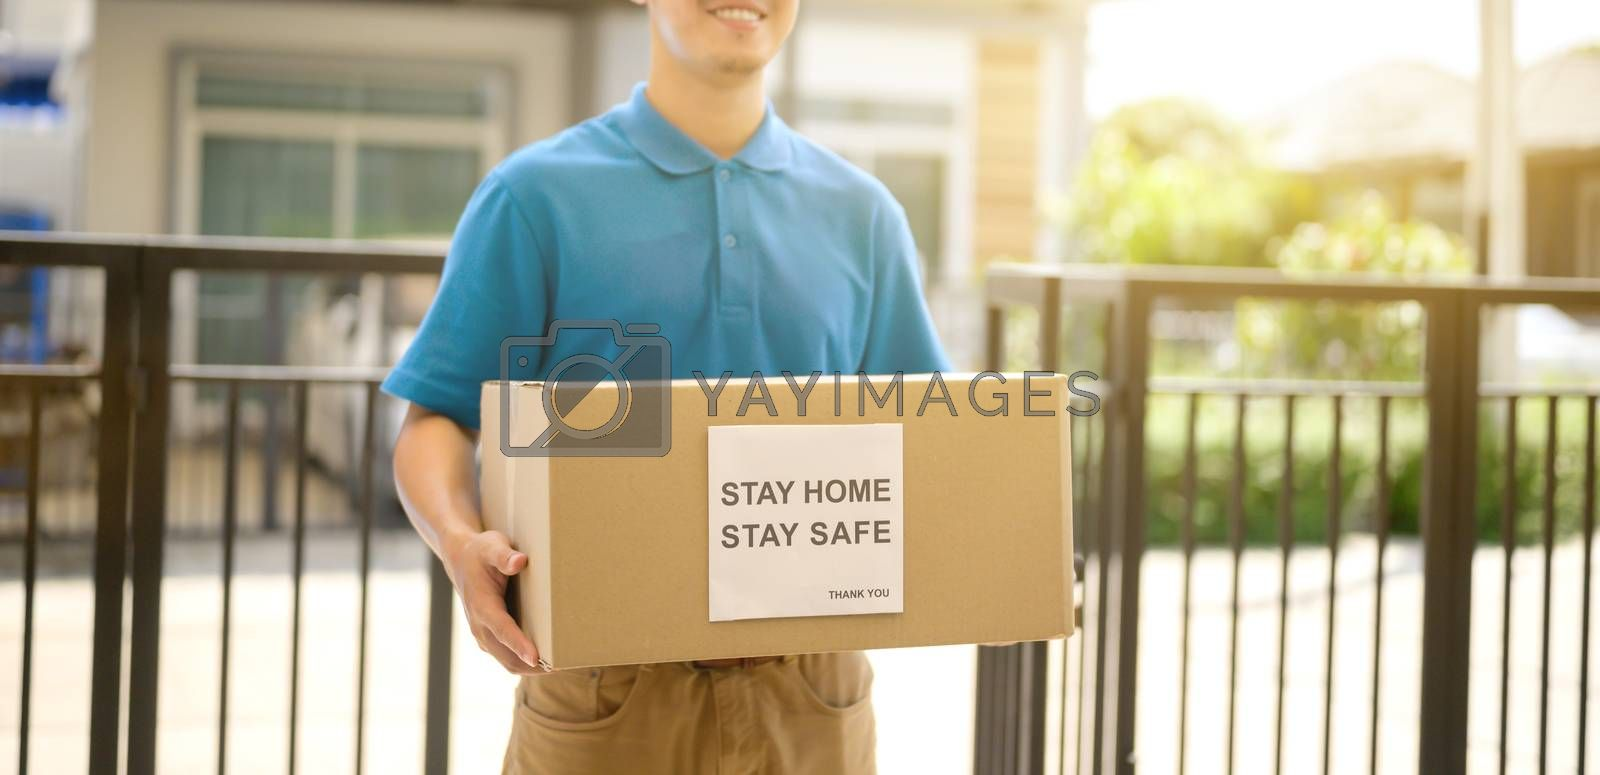 Home delivery when Lock down and Self-quarantine at home. New normal and life after COVID in Thailand, Asia. Social distancing and stay home stay safe.